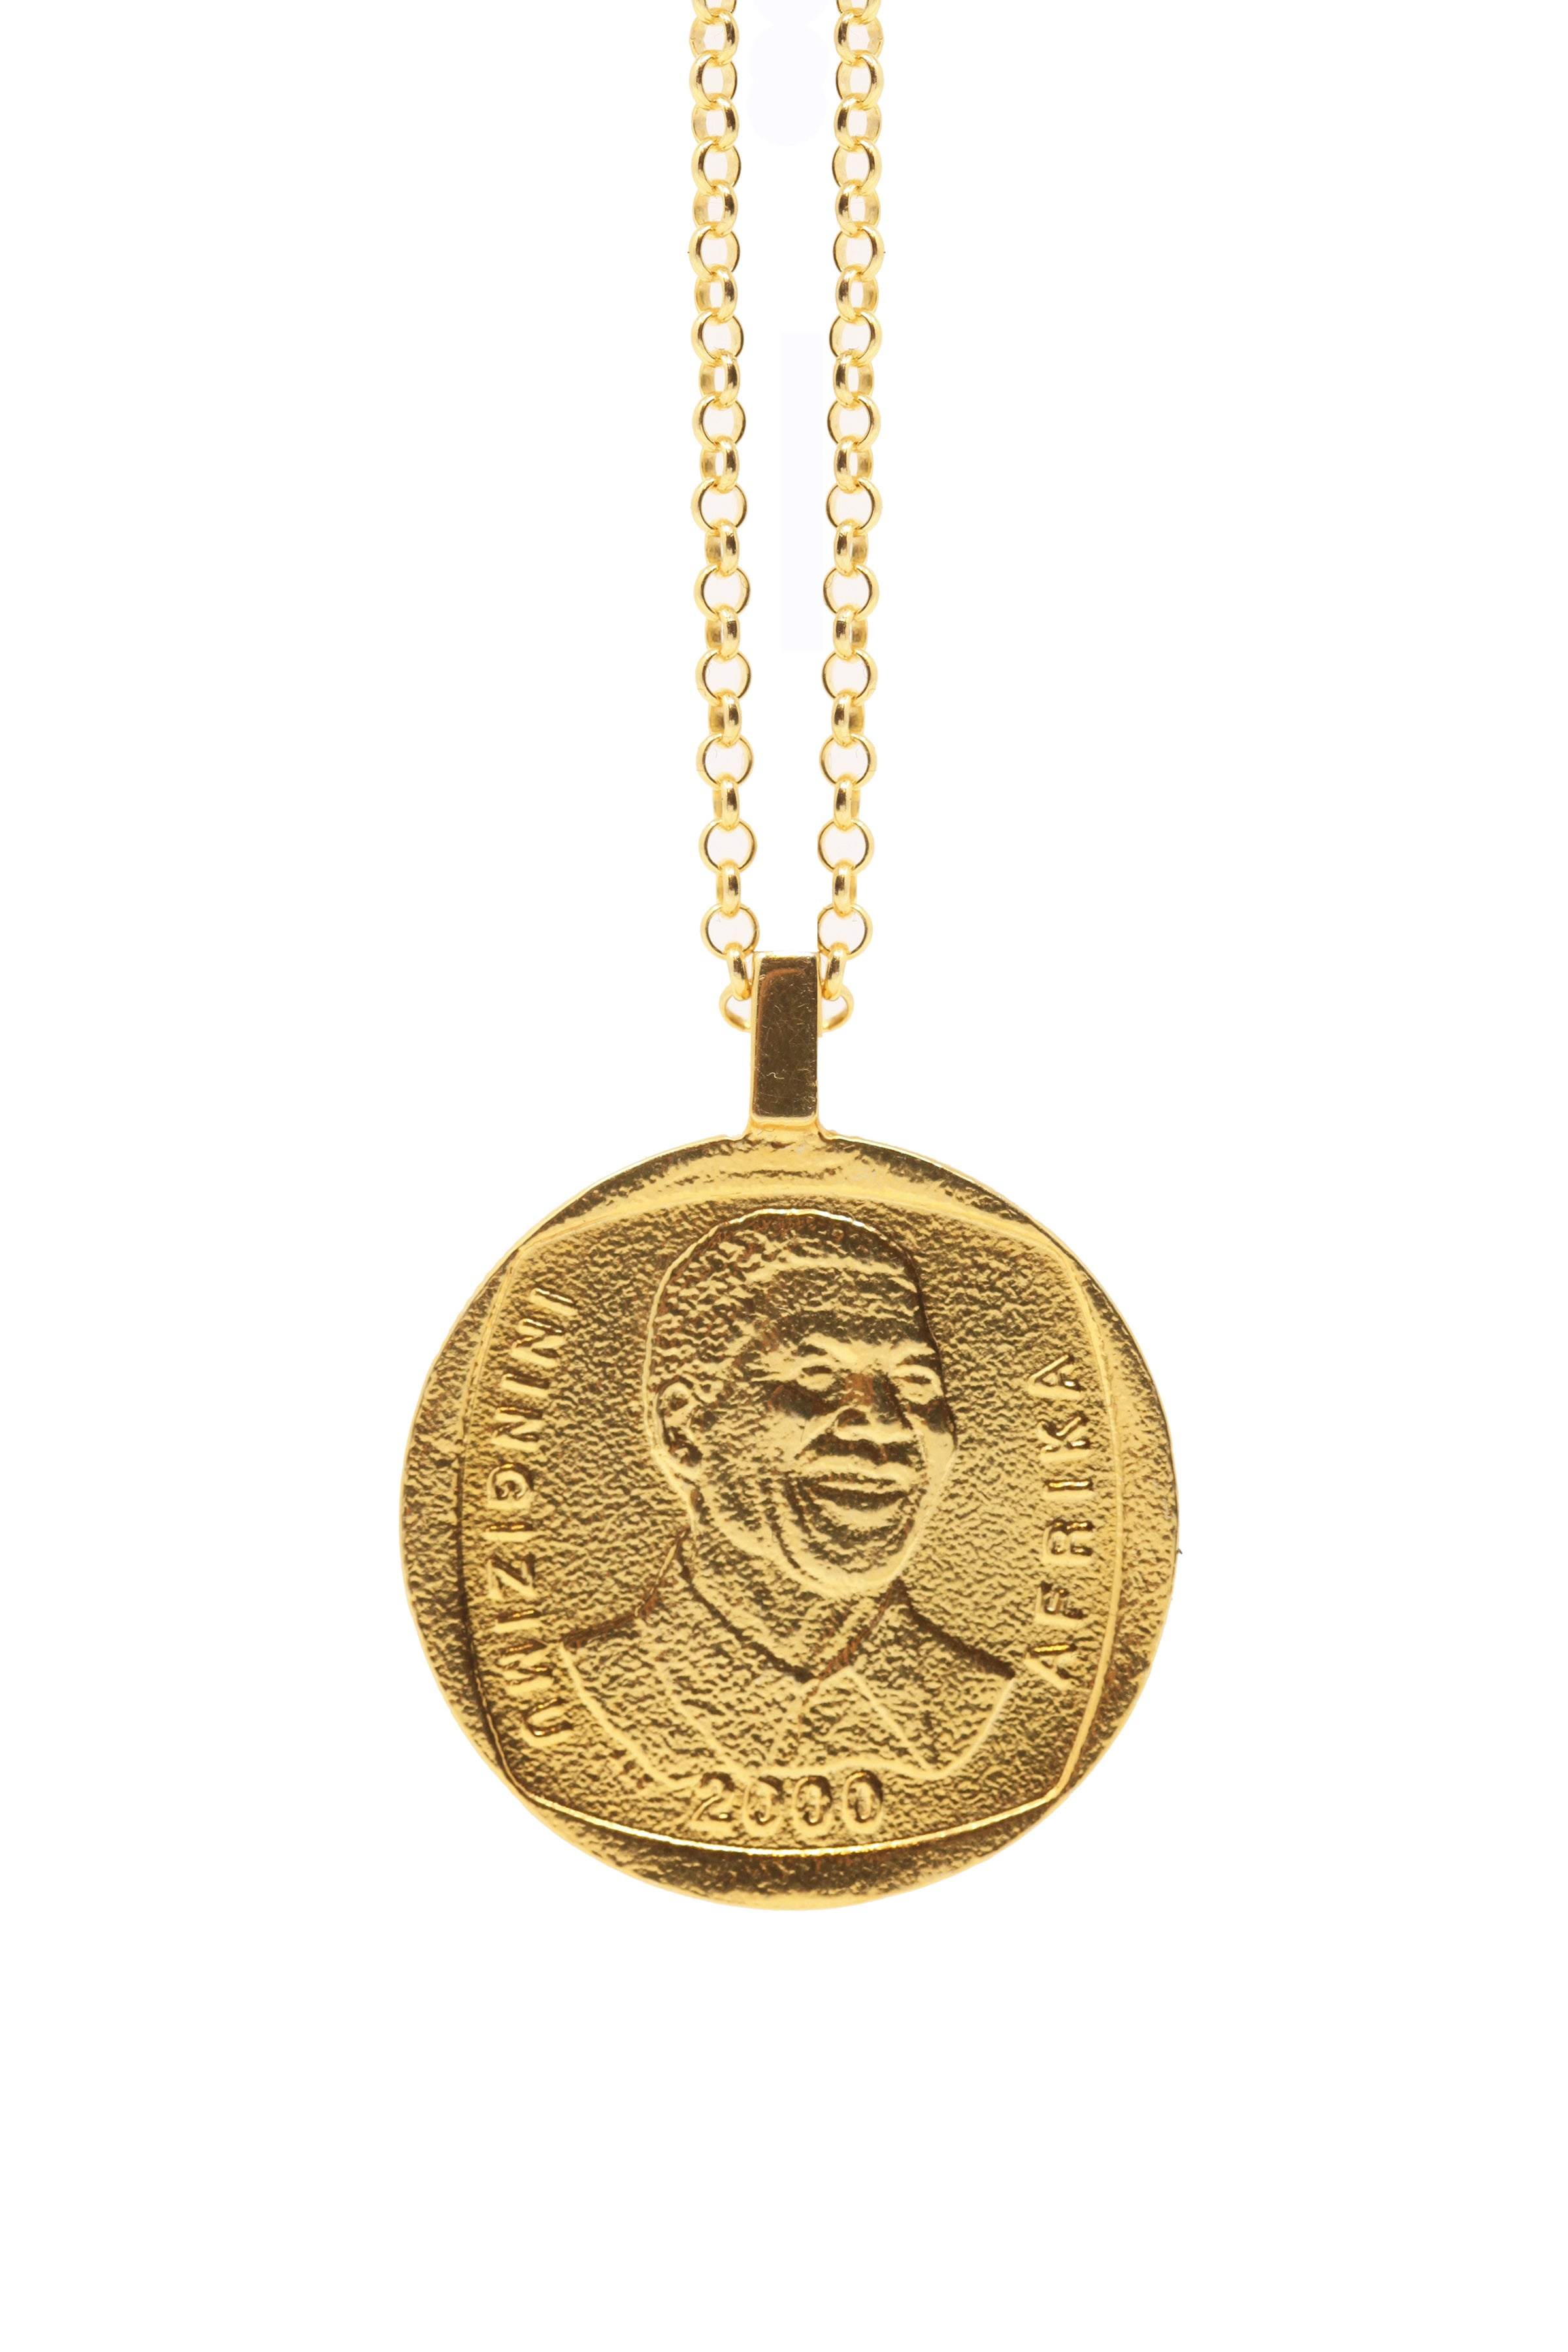 THE SOUTH Africa Mandela Necklace